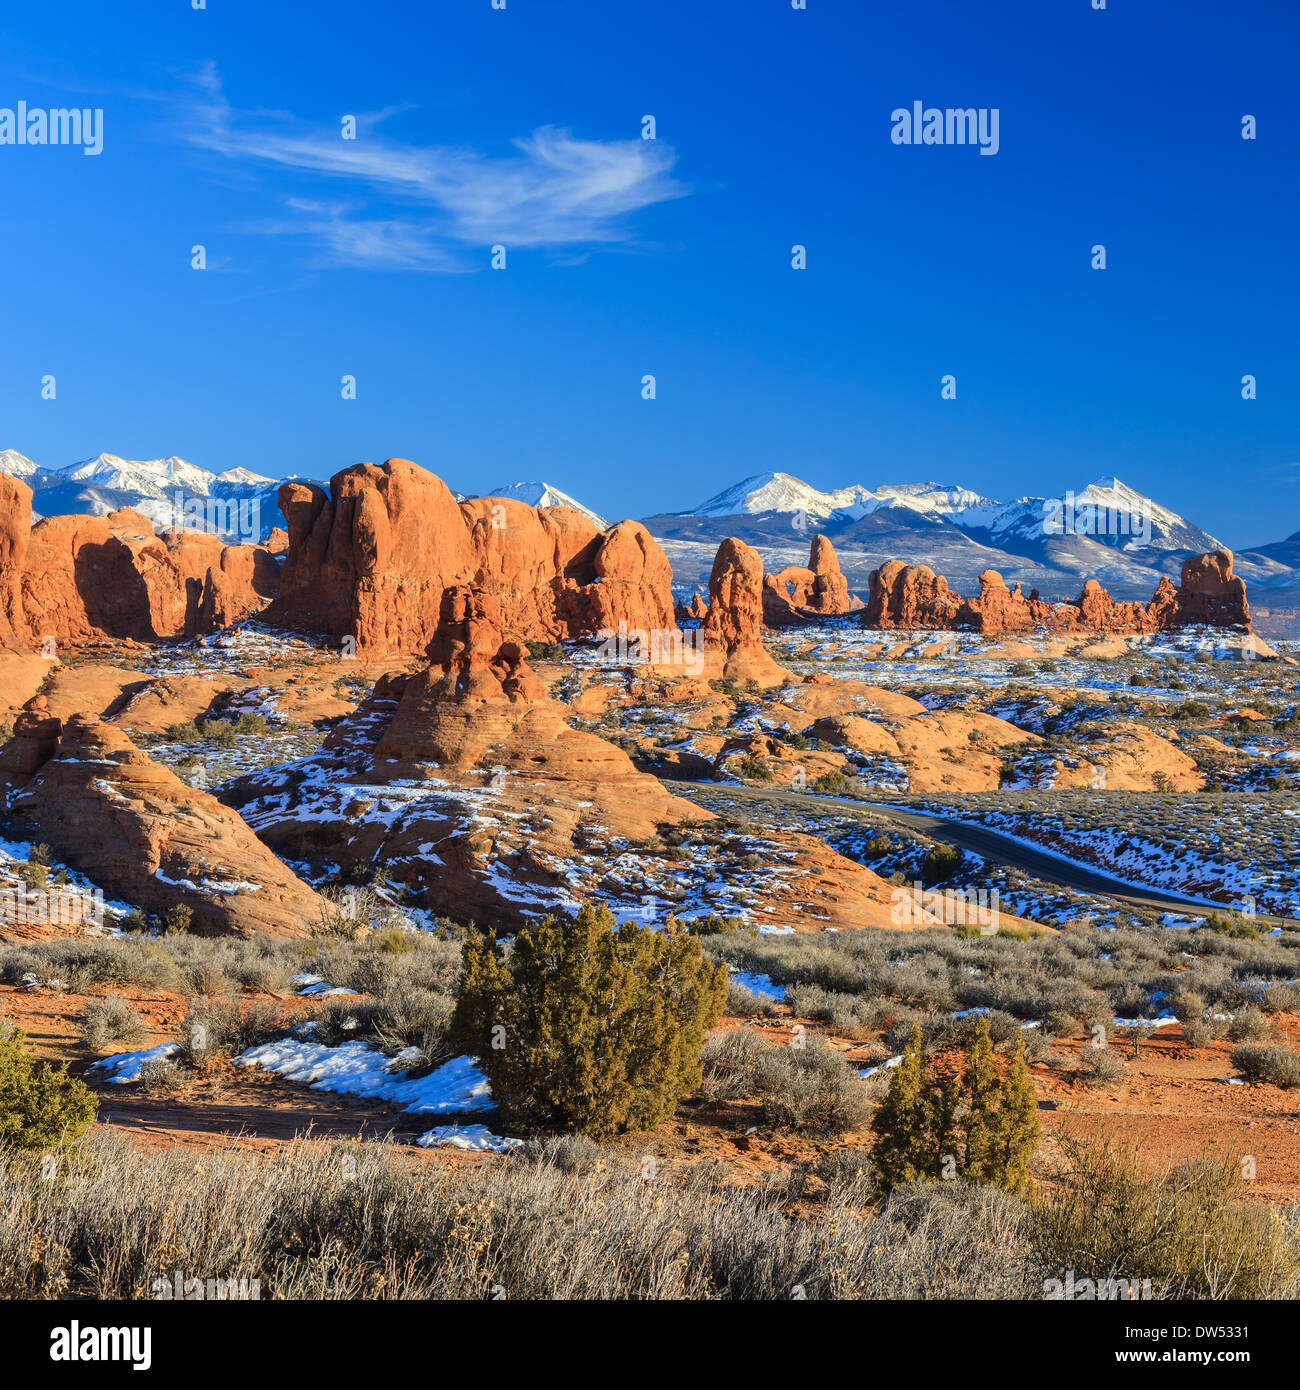 Winter Scenery In Arches National Park Near Moab Utah USA Stock Photo Ro